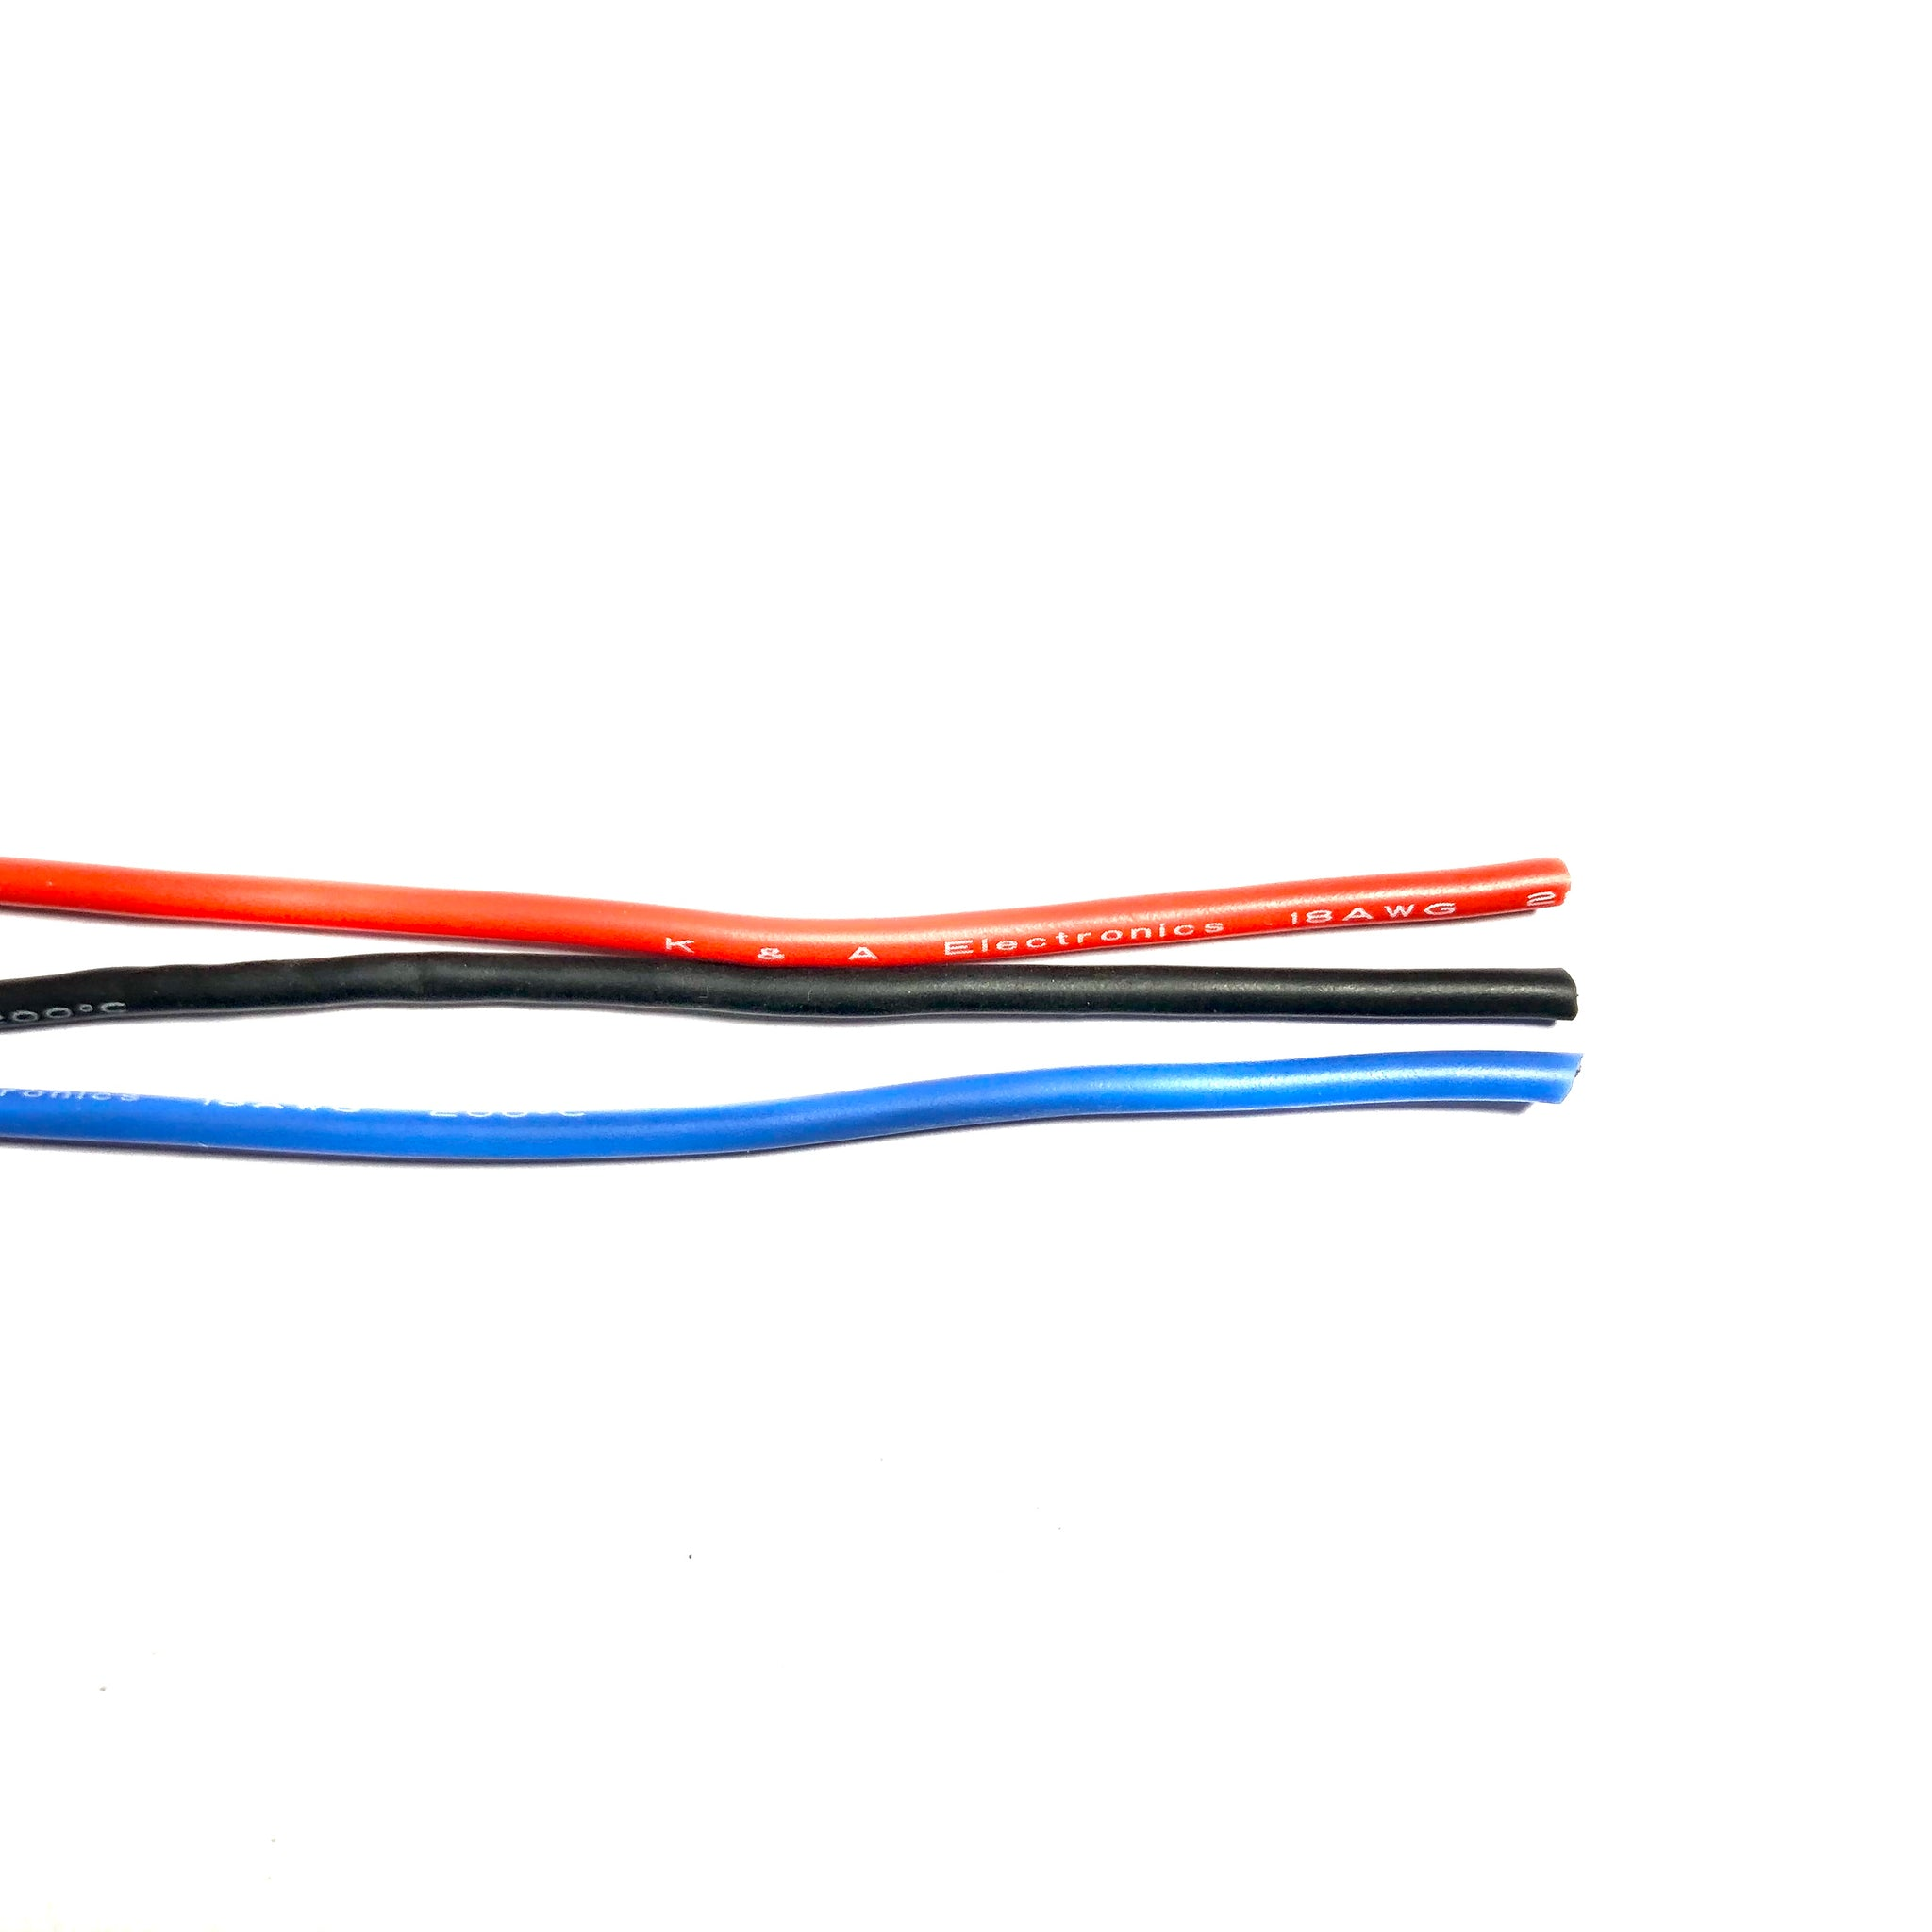 18AWG Stranded-Core Silicone Wire